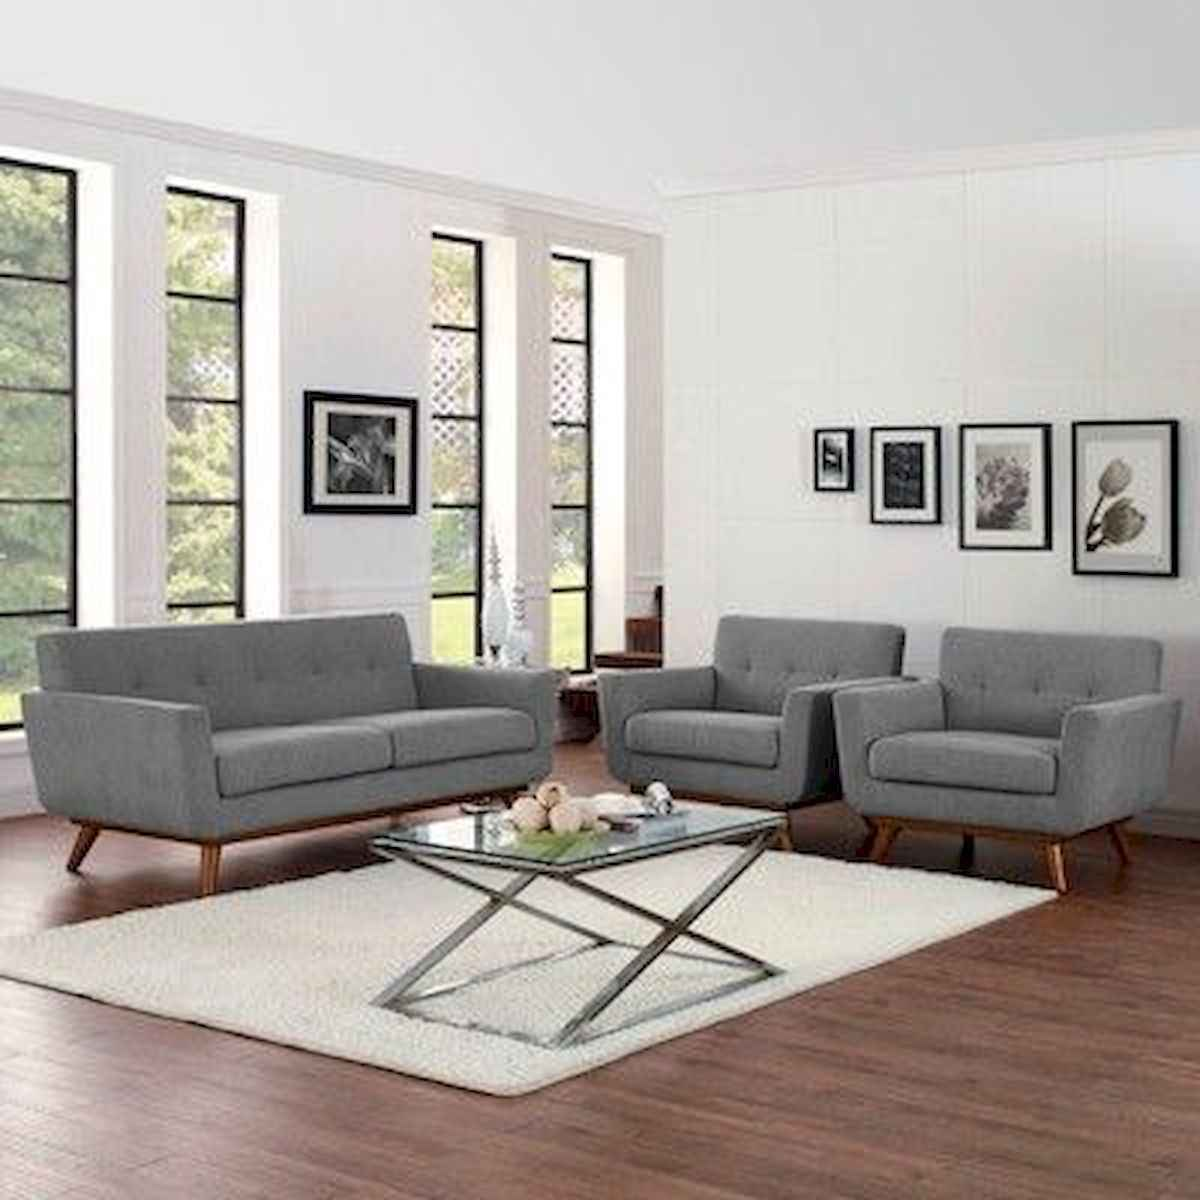 70 Stunning Grey White Black Living Room Decor Ideas And Remodel (46)